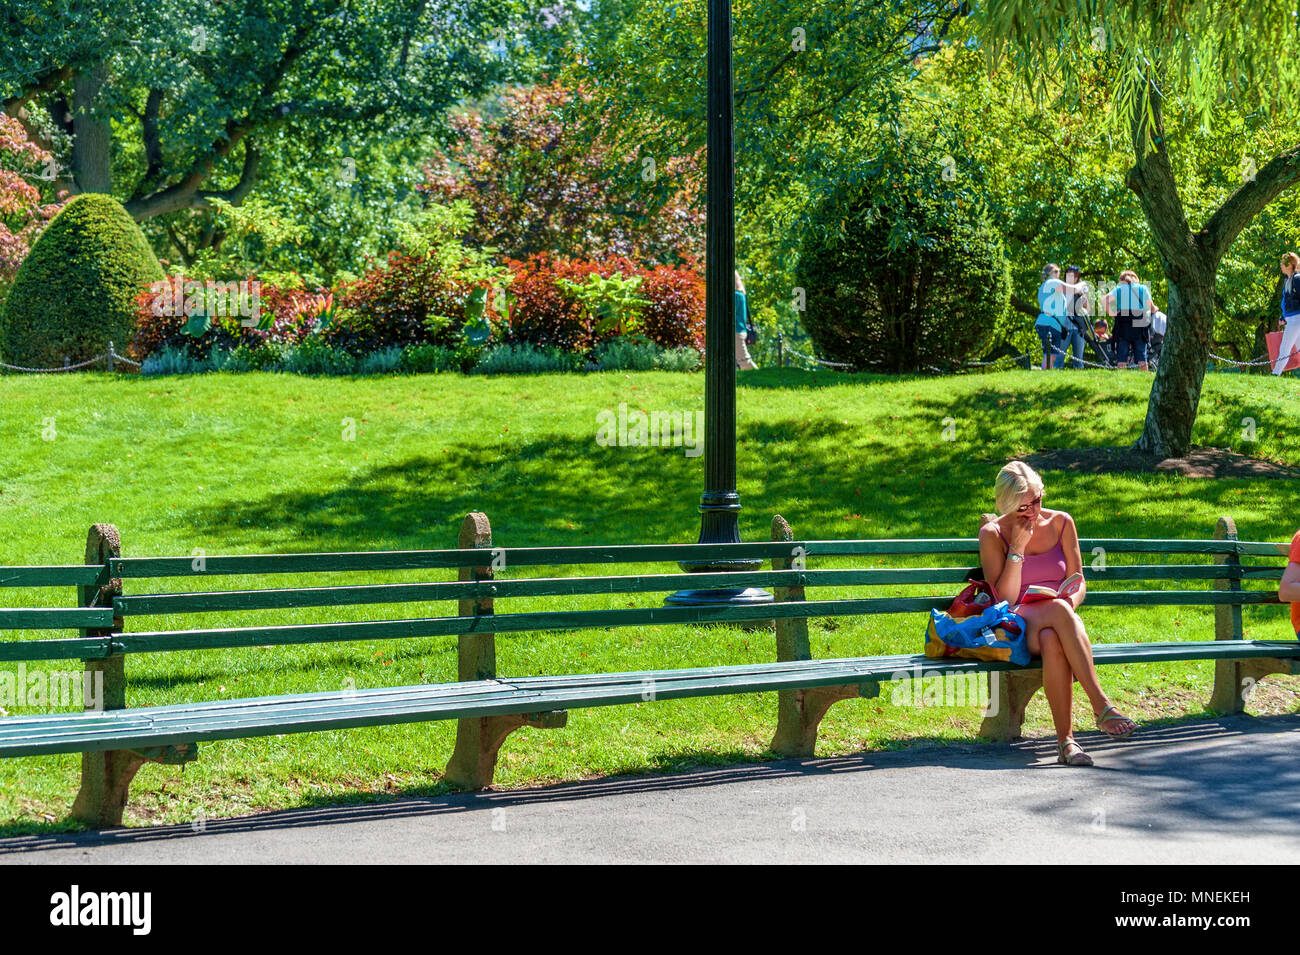 Boston, Massachusetts, USA - September 12, 2016: A lady sits on a park bench reading a book in Boston Public Garden, in Boston, Massachusetts Stock Photo